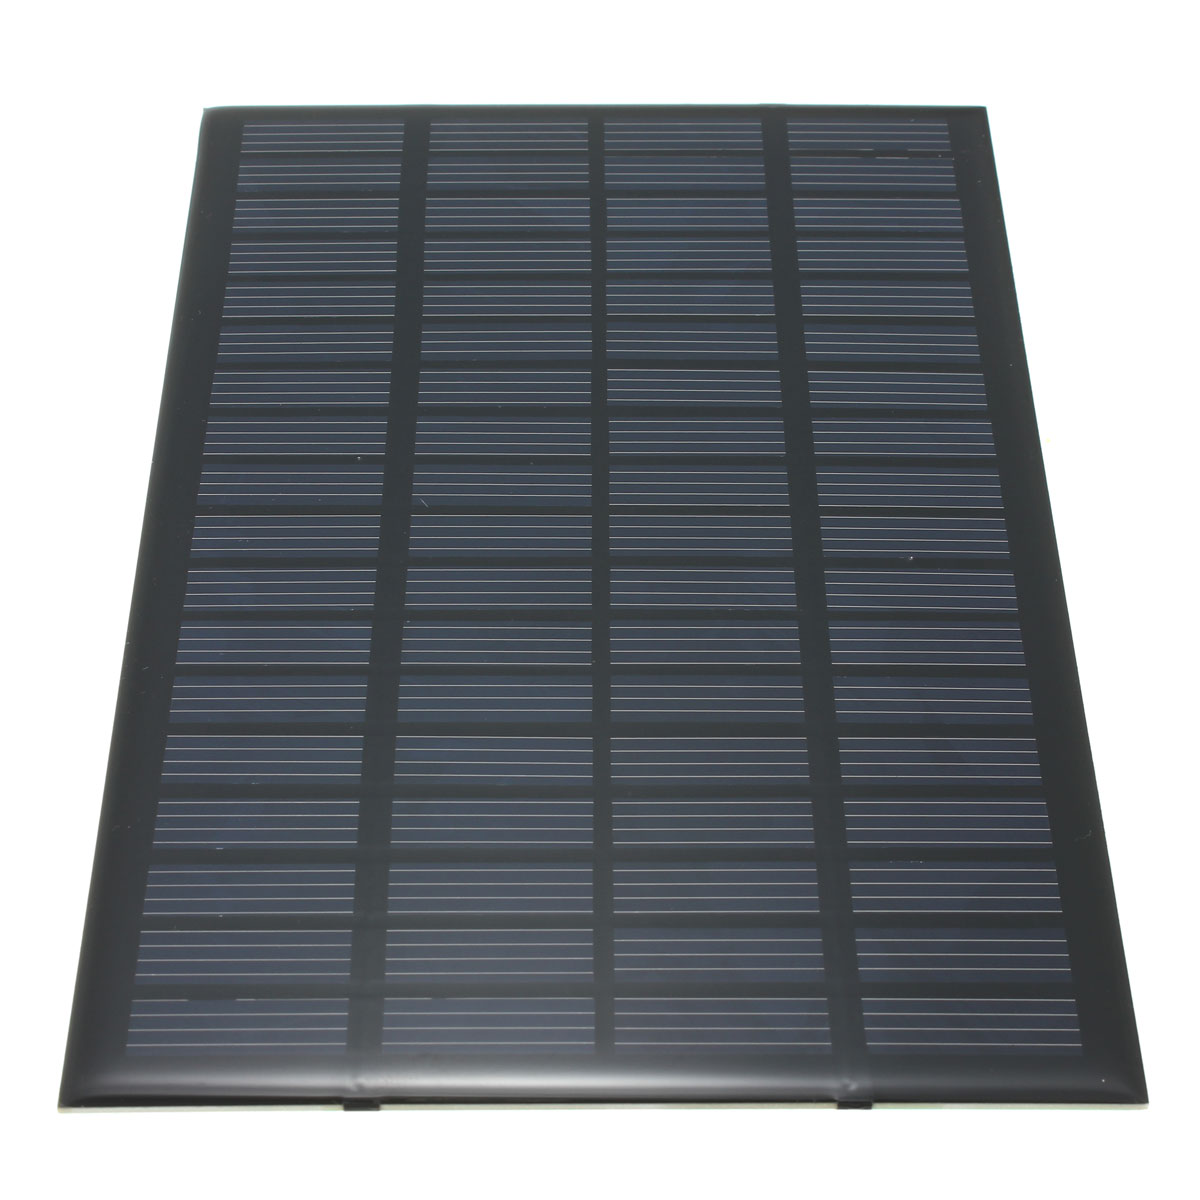 Hot Sale 18V 2.5W Polycrystalline Stored Energy Power Solar Panel Module System Solar Cells Charger 19.4x12x0.3cm(China (Mainland))